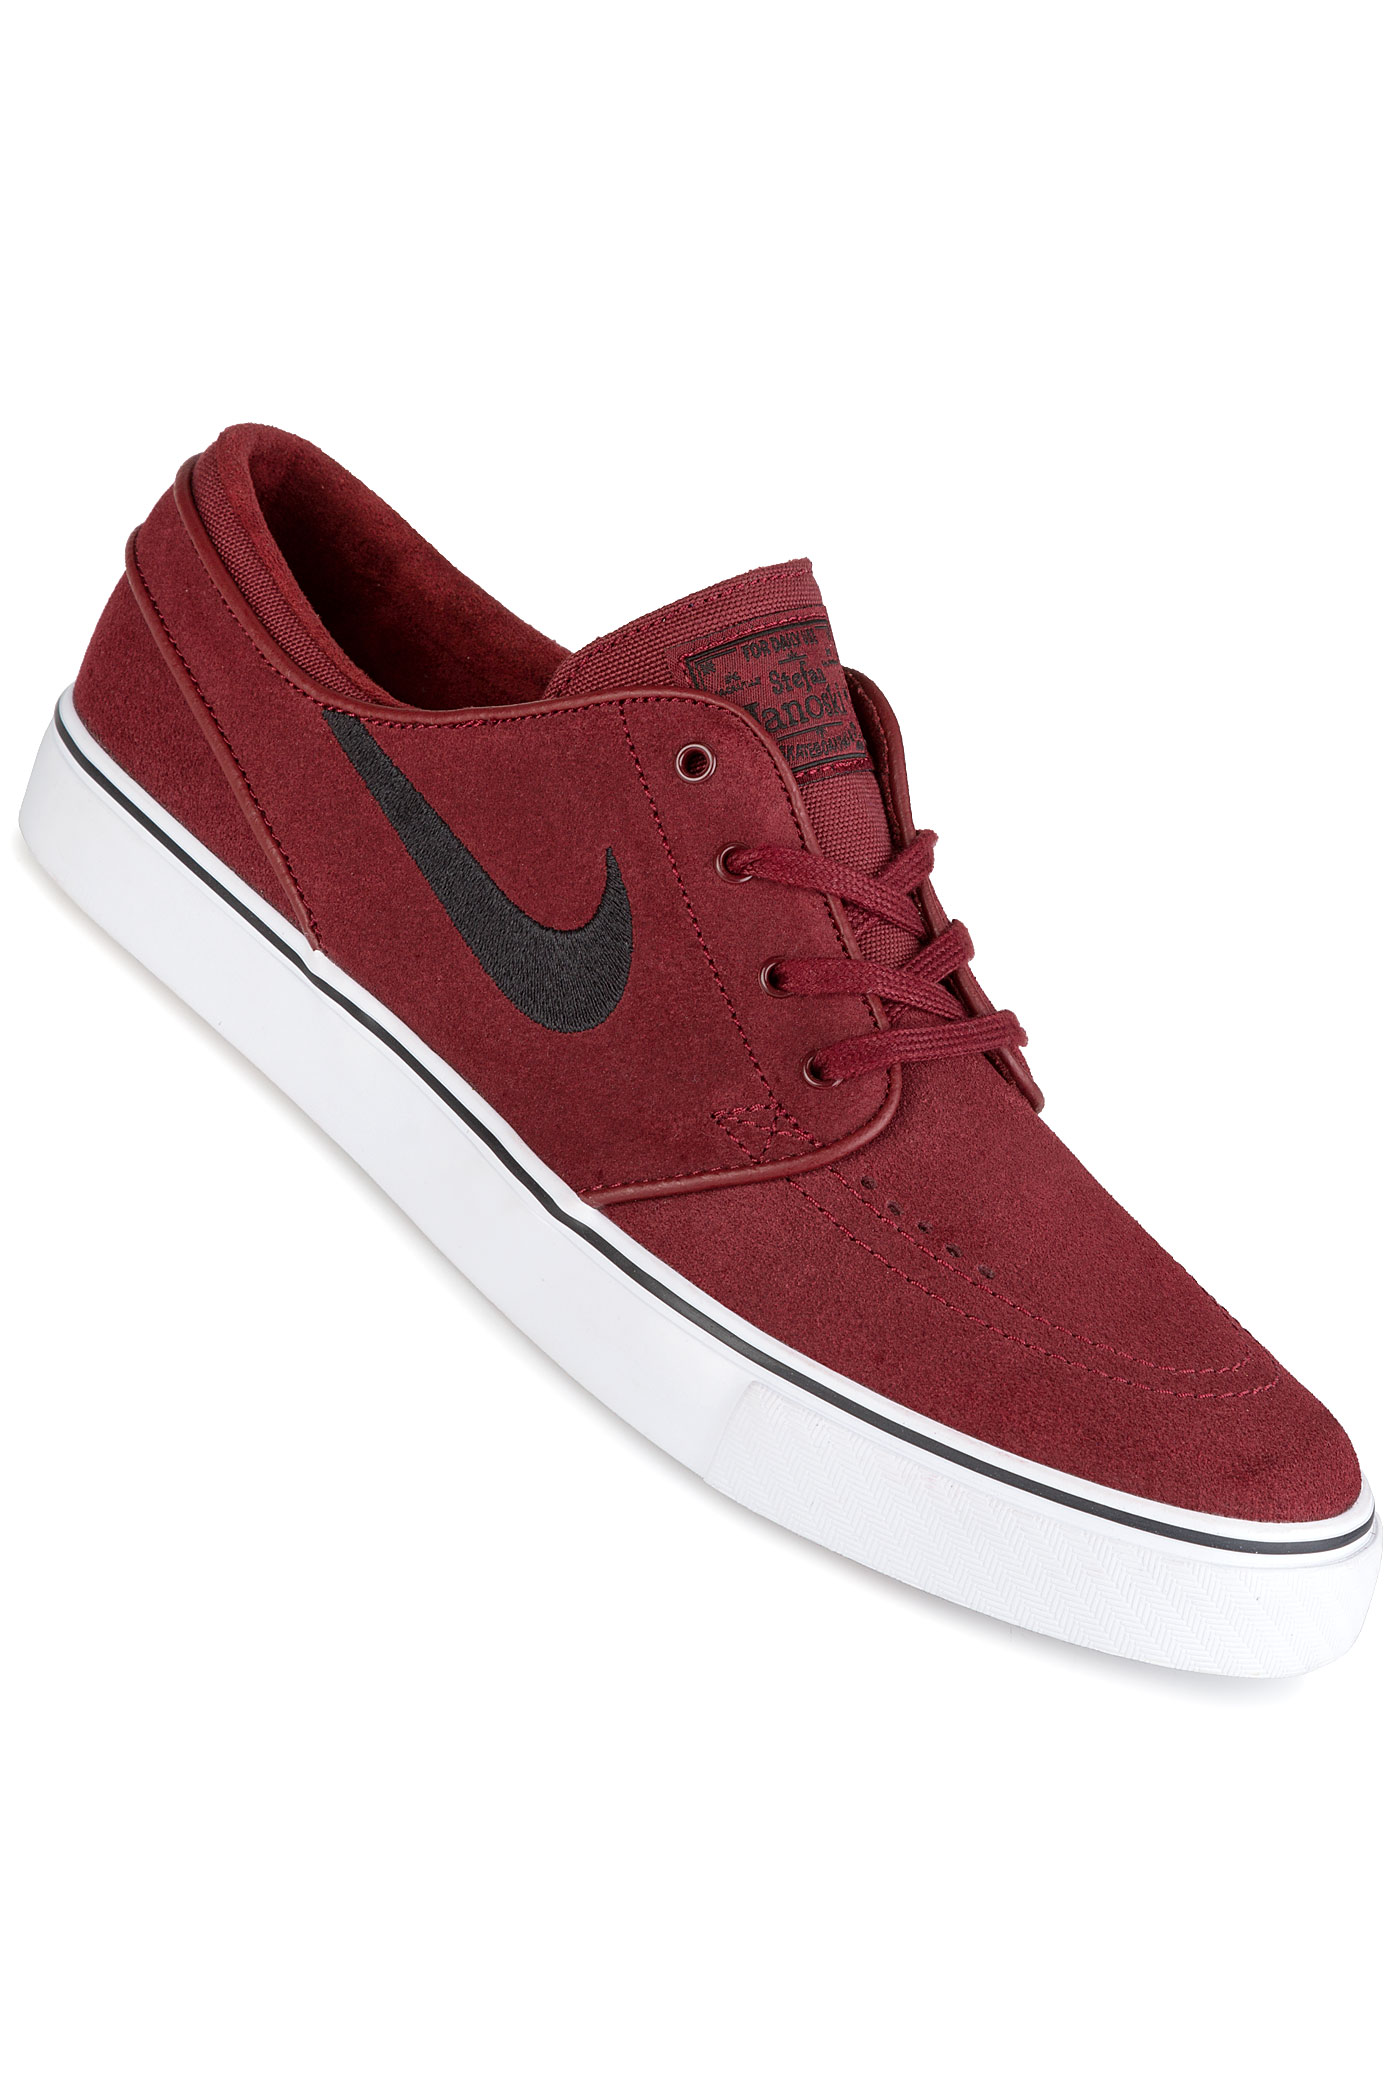 nike sb zoom stefan janoski shoes dark team red black. Black Bedroom Furniture Sets. Home Design Ideas